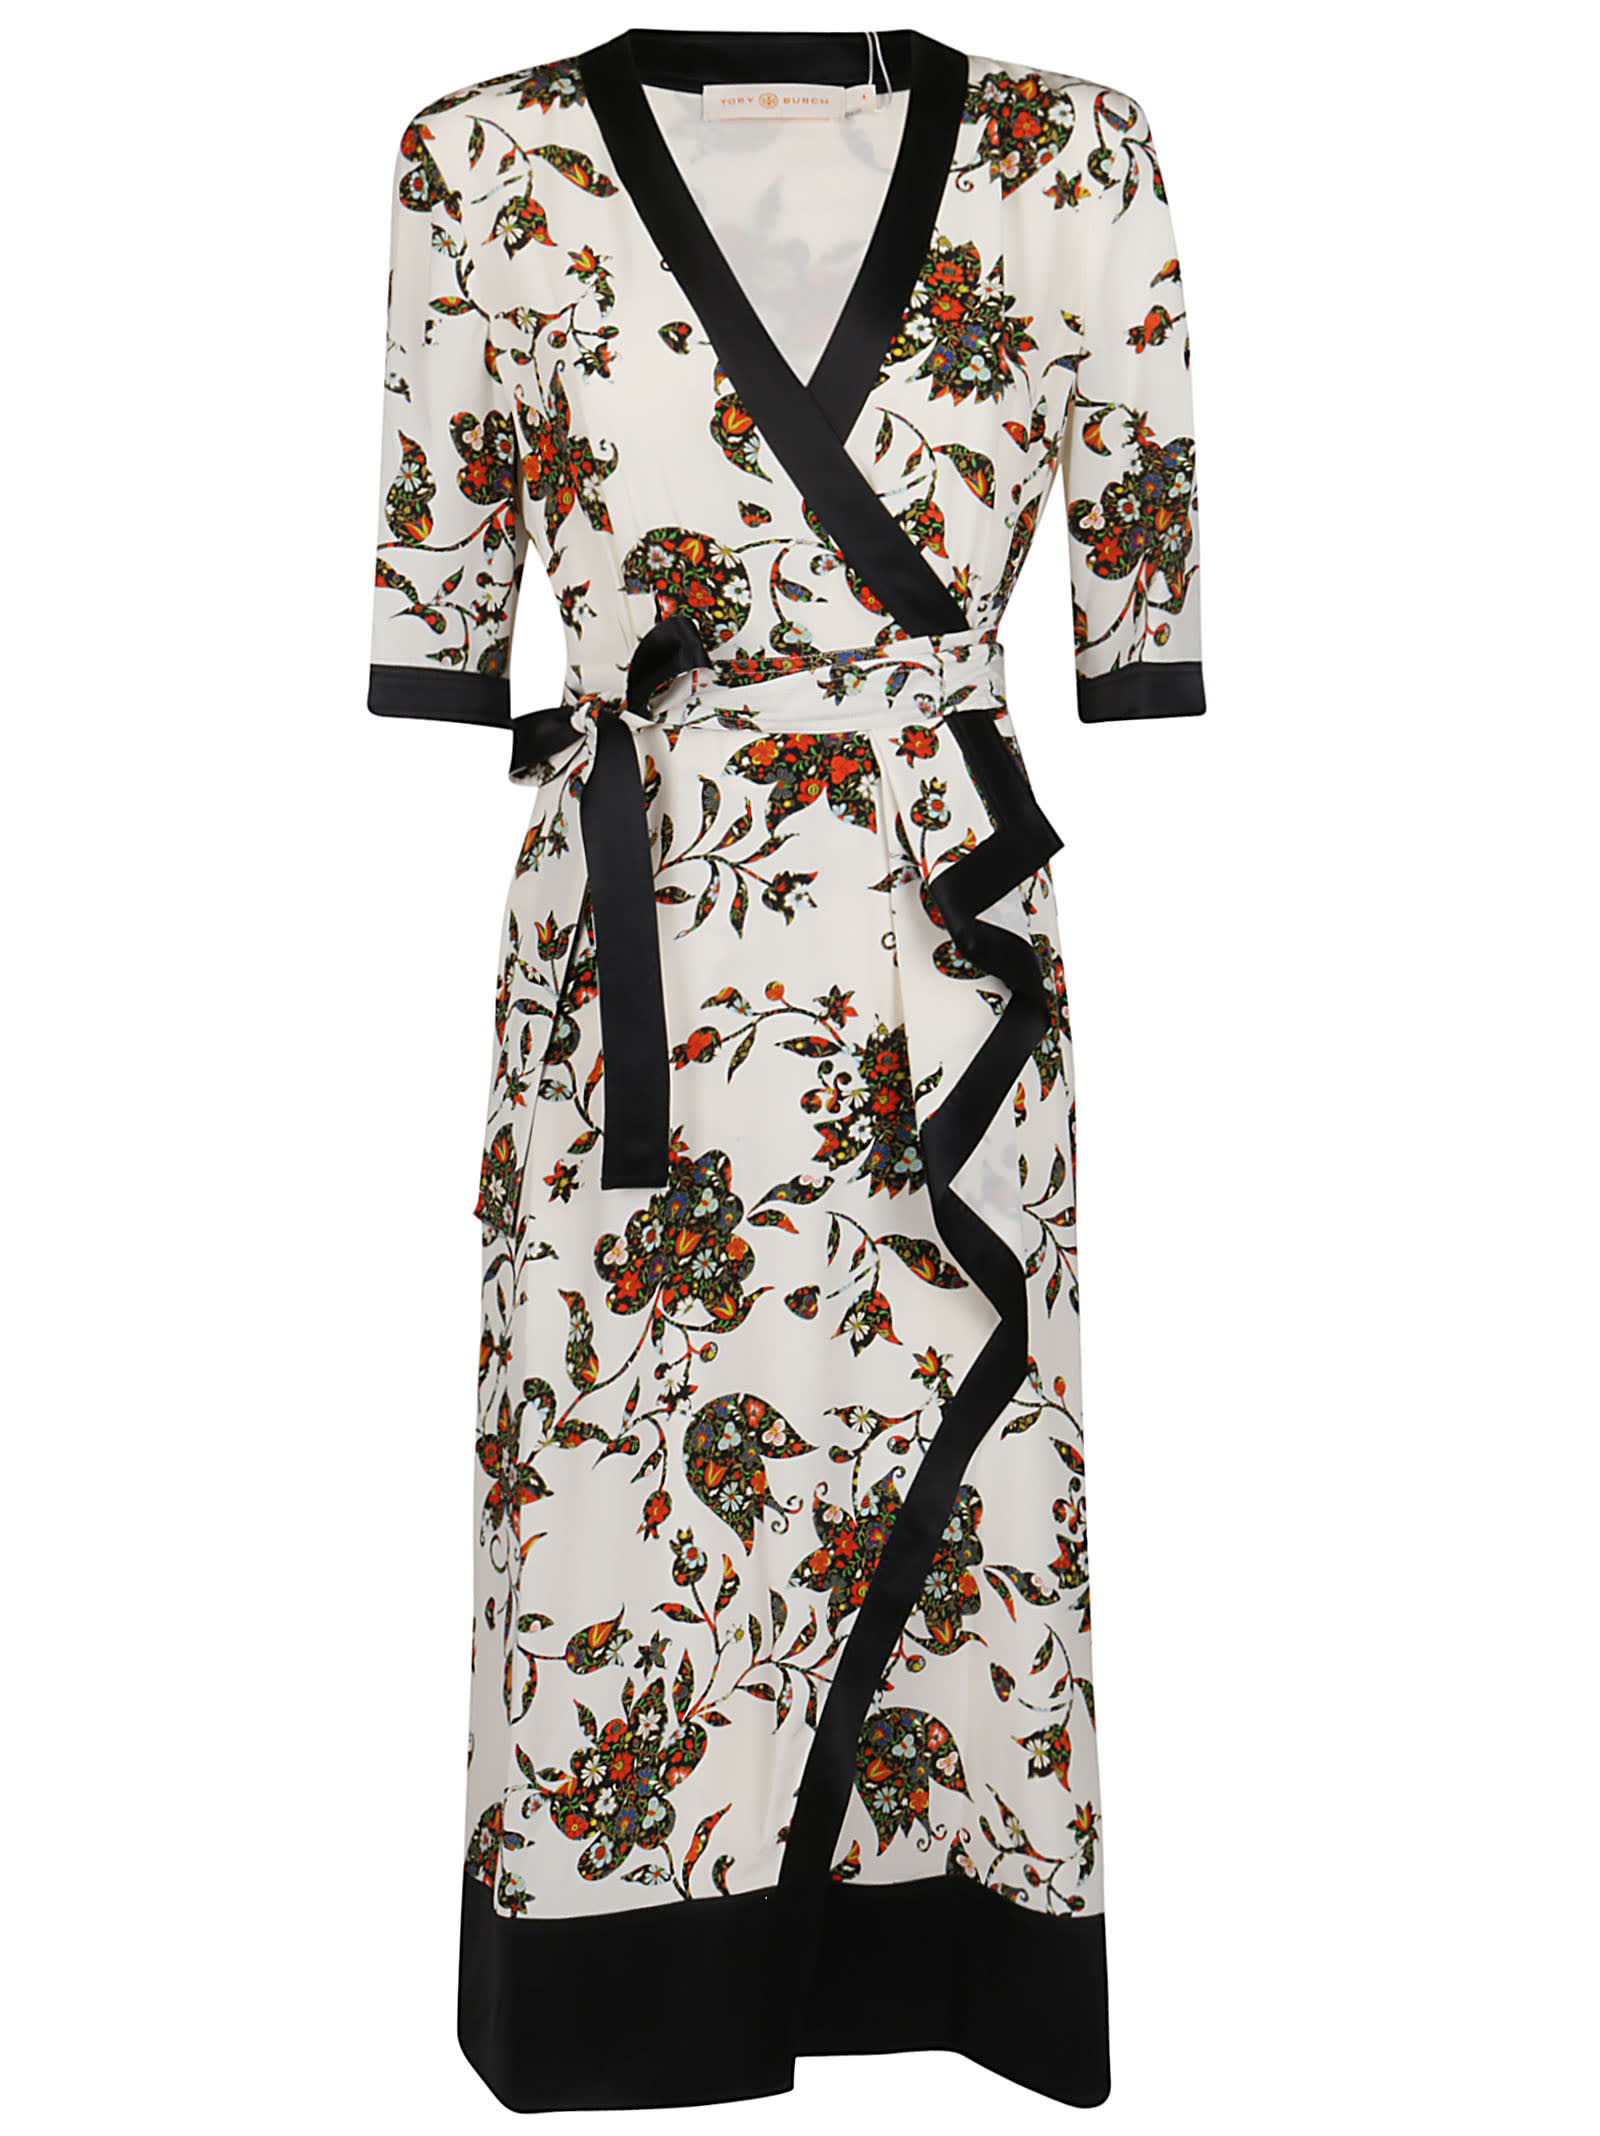 Buy Tory Burch Wrap Floral Dress online, shop Tory Burch with free shipping